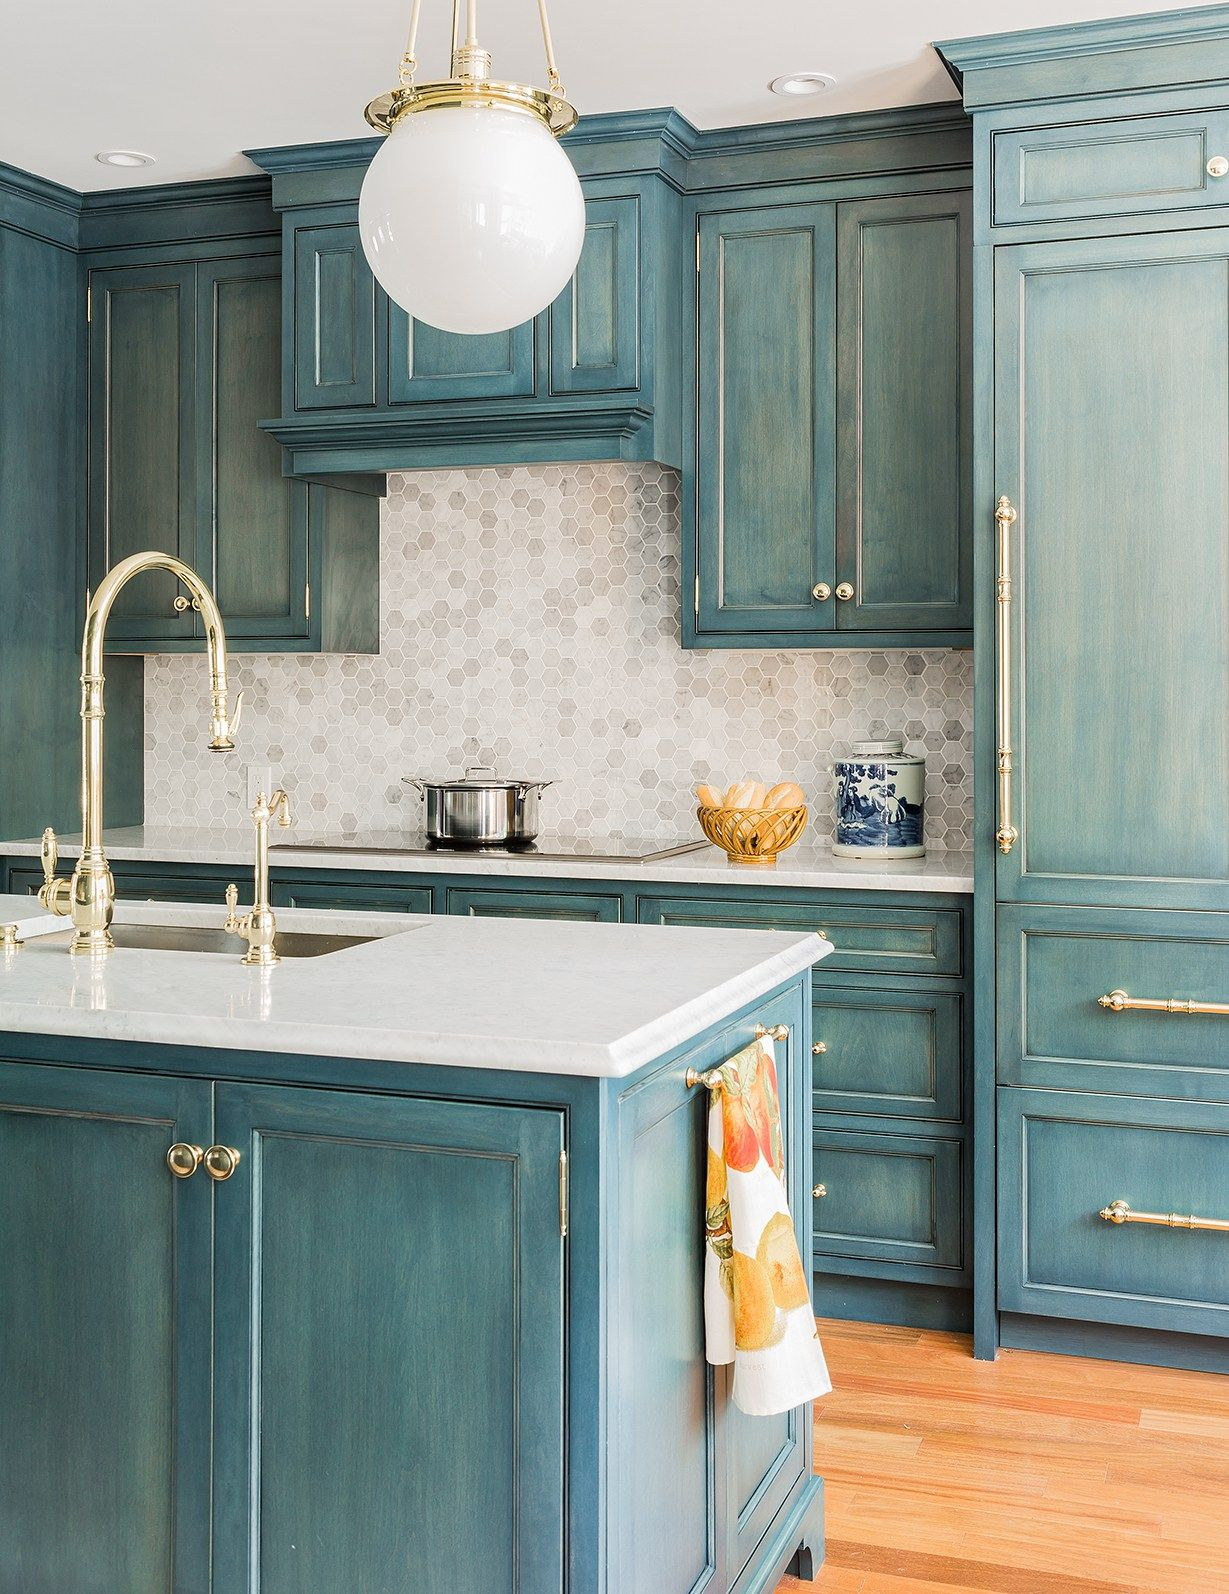 Painted cabinetry colors on kitchen pantry and bathroom cabinets